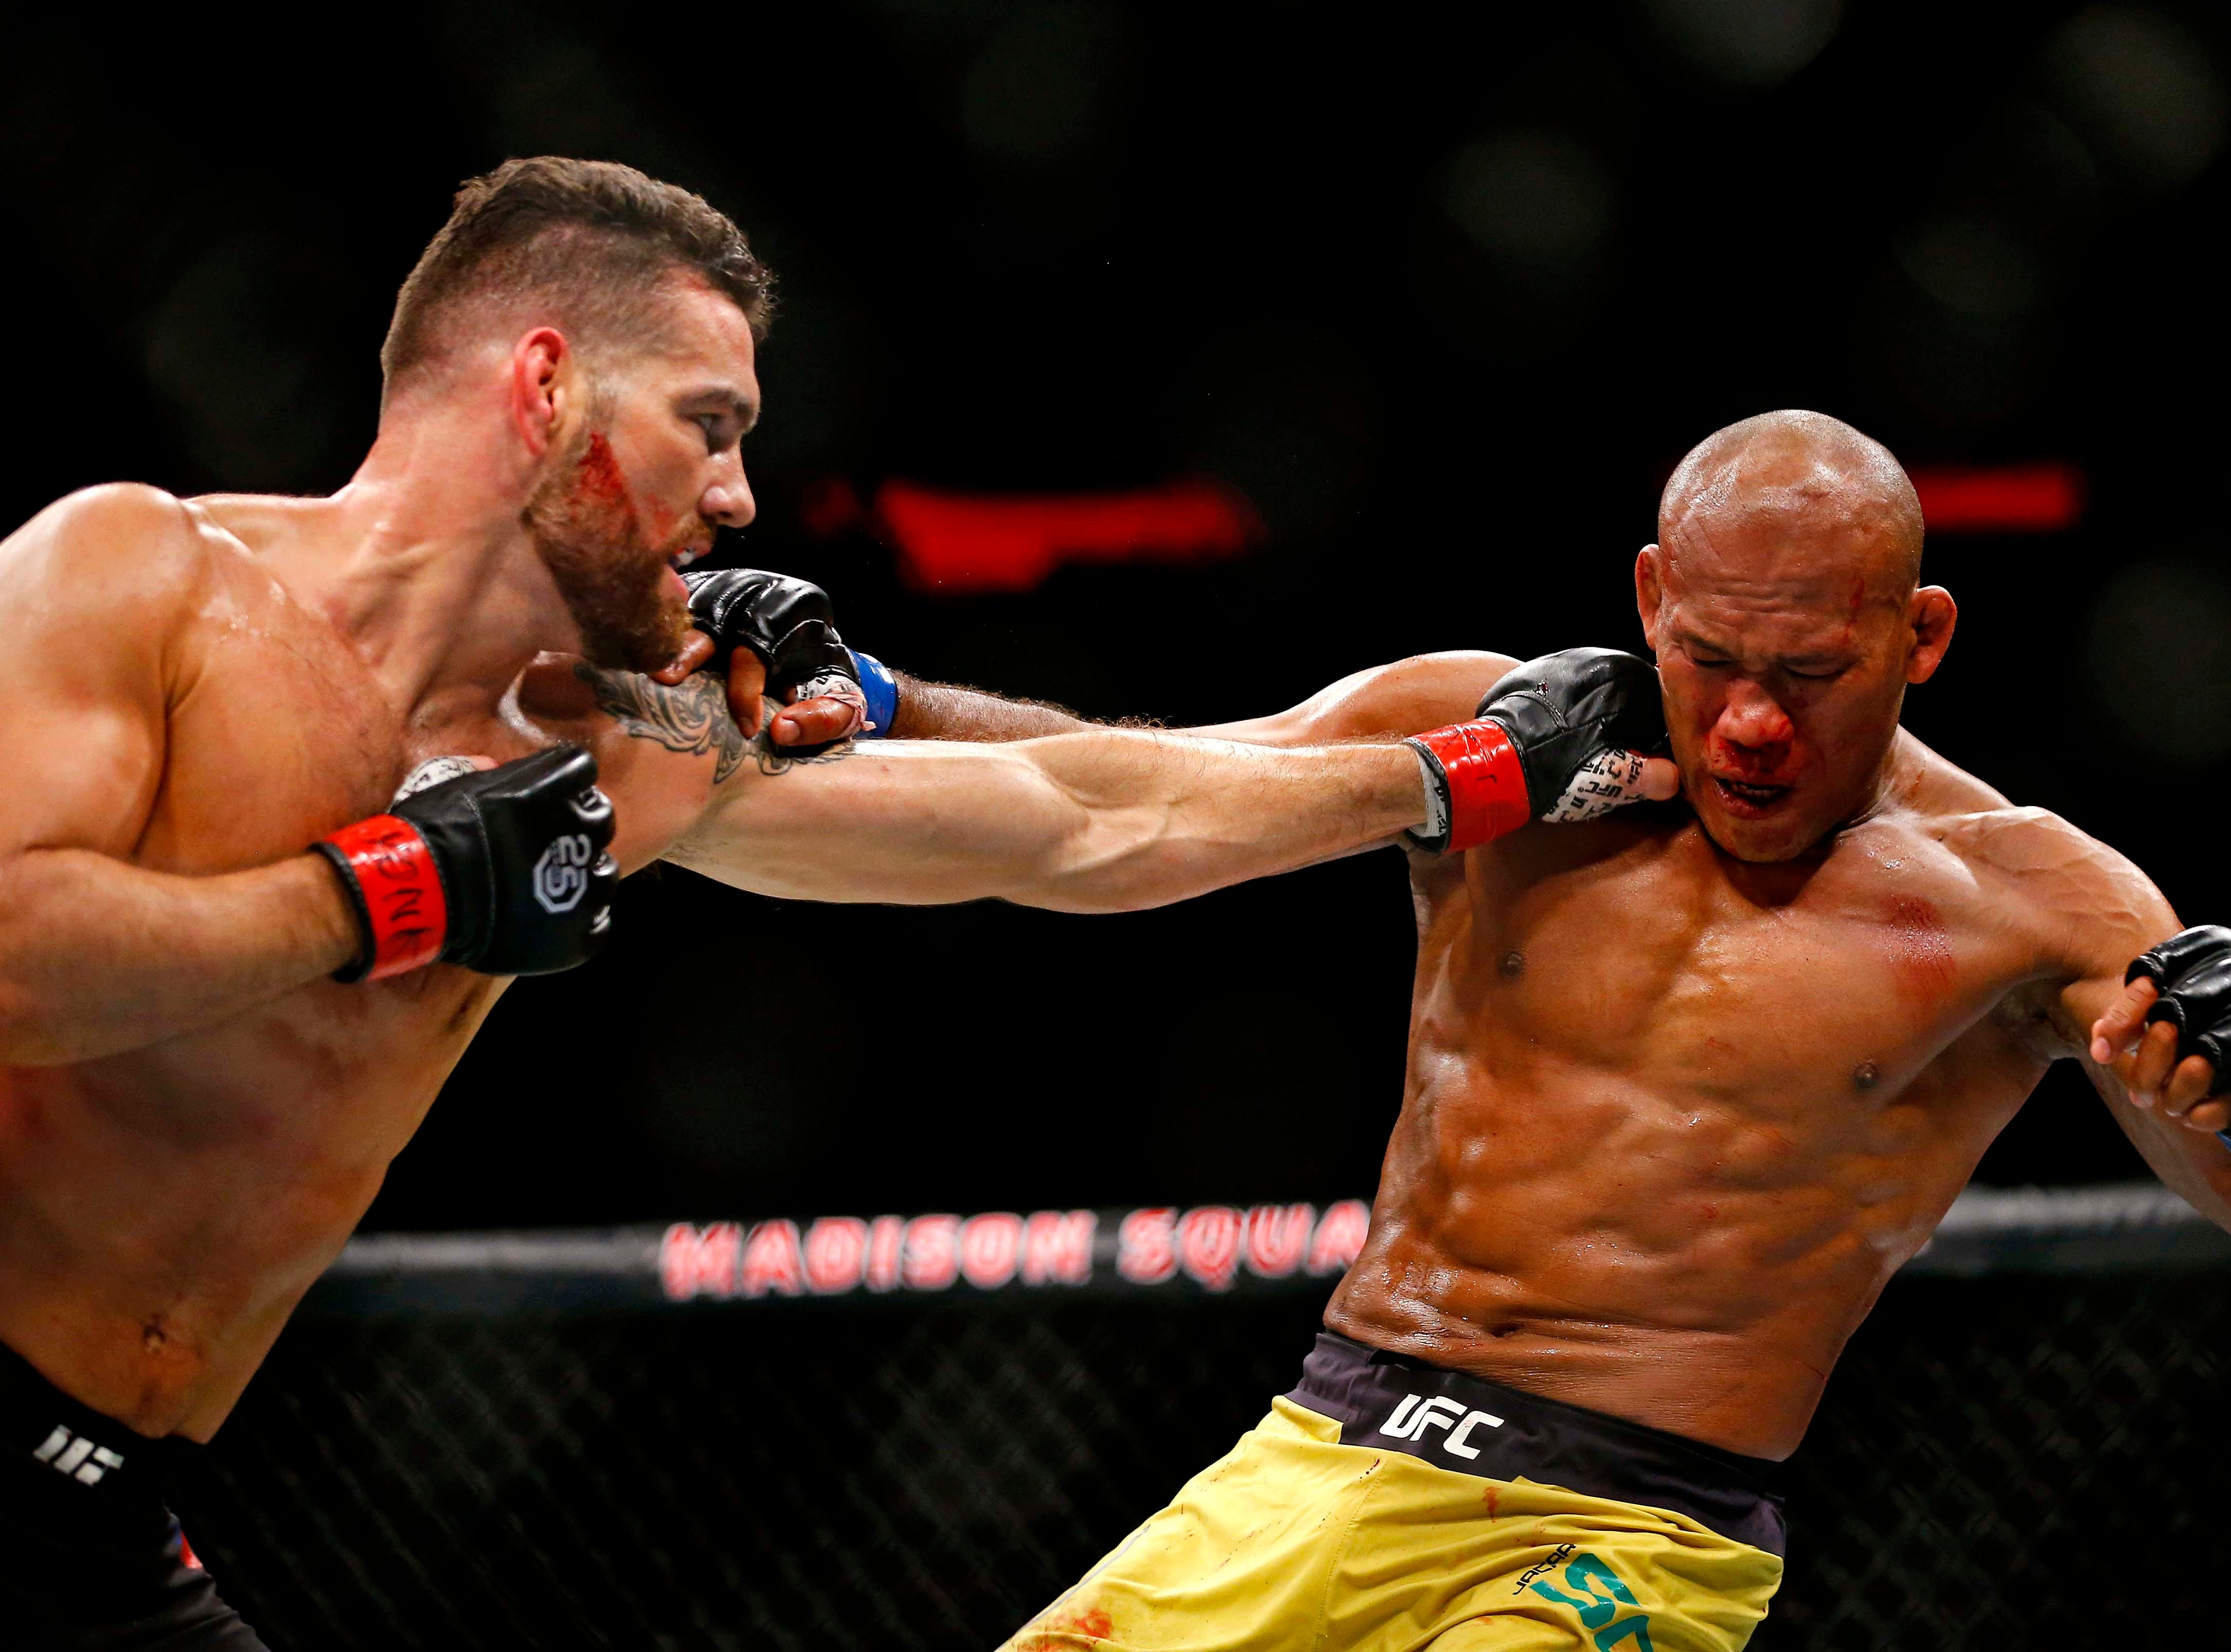 Chris Weidman (red gloves) fights Ronaldo Souza (blue gloves) during UFC 230 at Madison Square Garden.